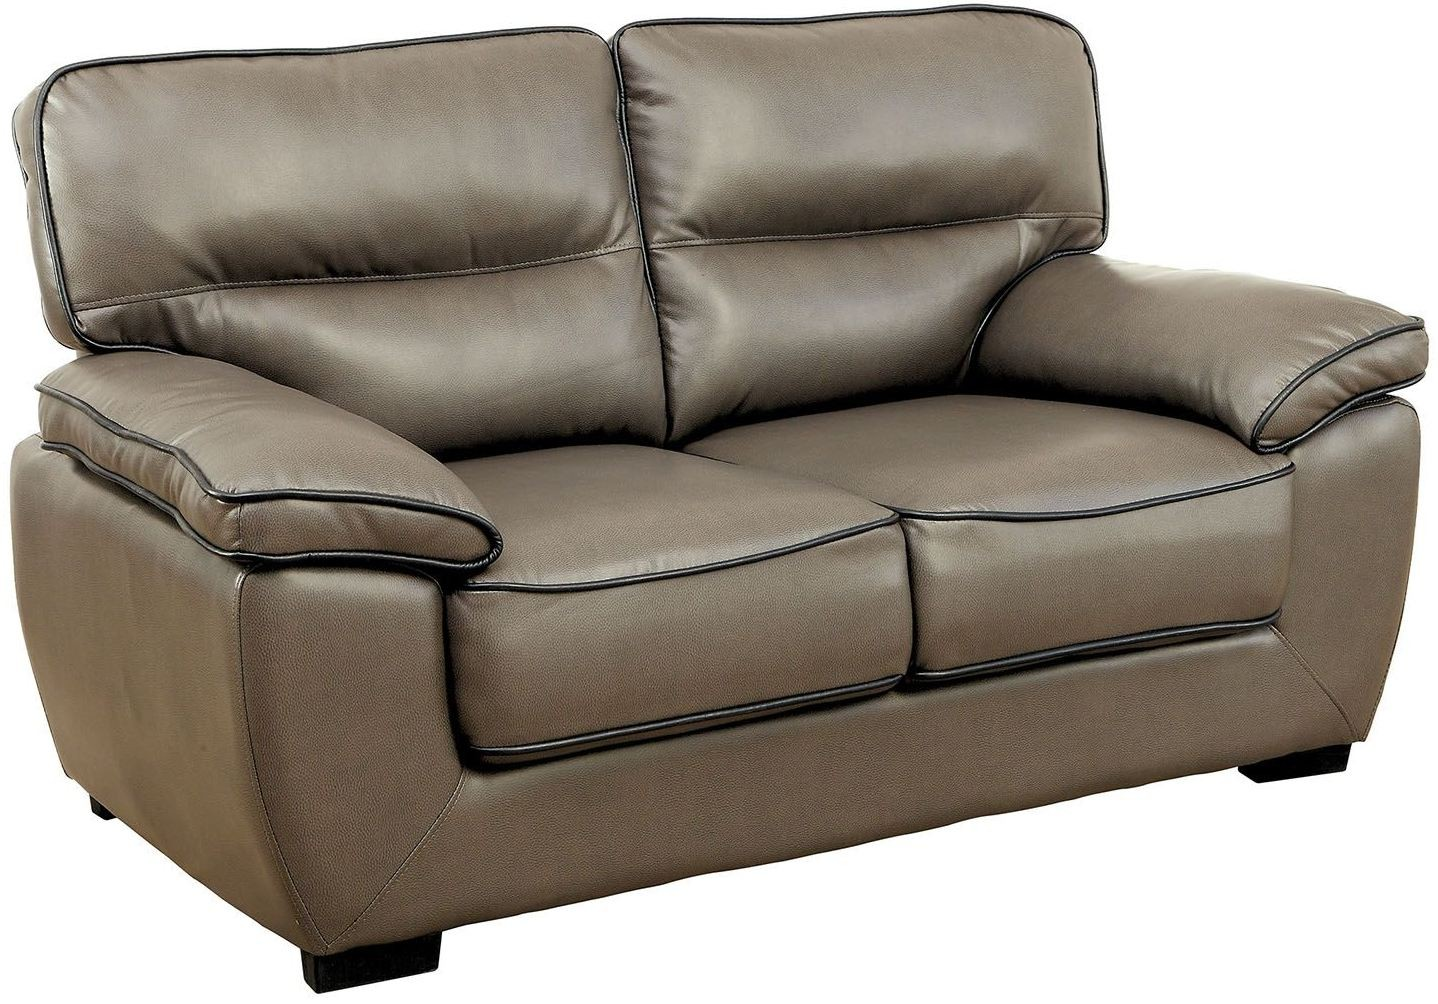 Lennox Gray Shined Faux Leather Loveseat Cm6126 L Furniture Of America